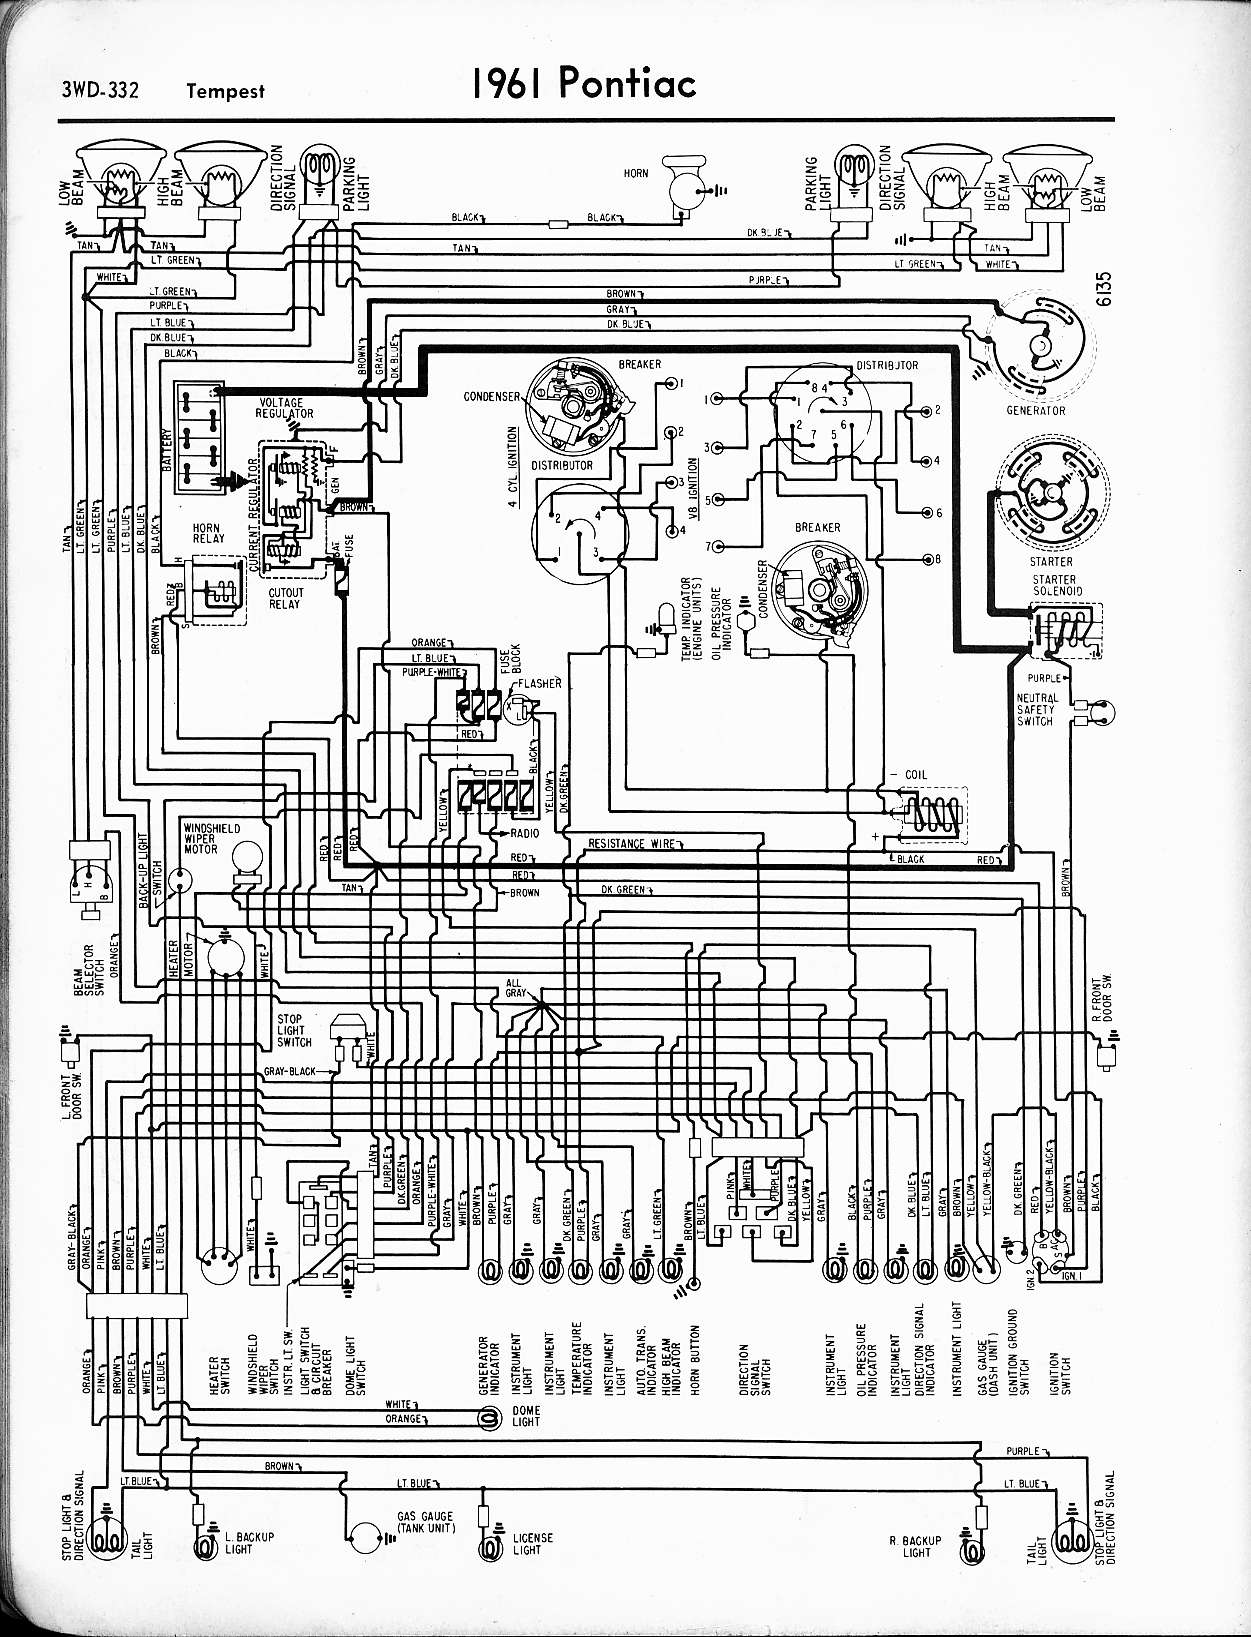 1973 pontiac ventura engine bay wiring diagram